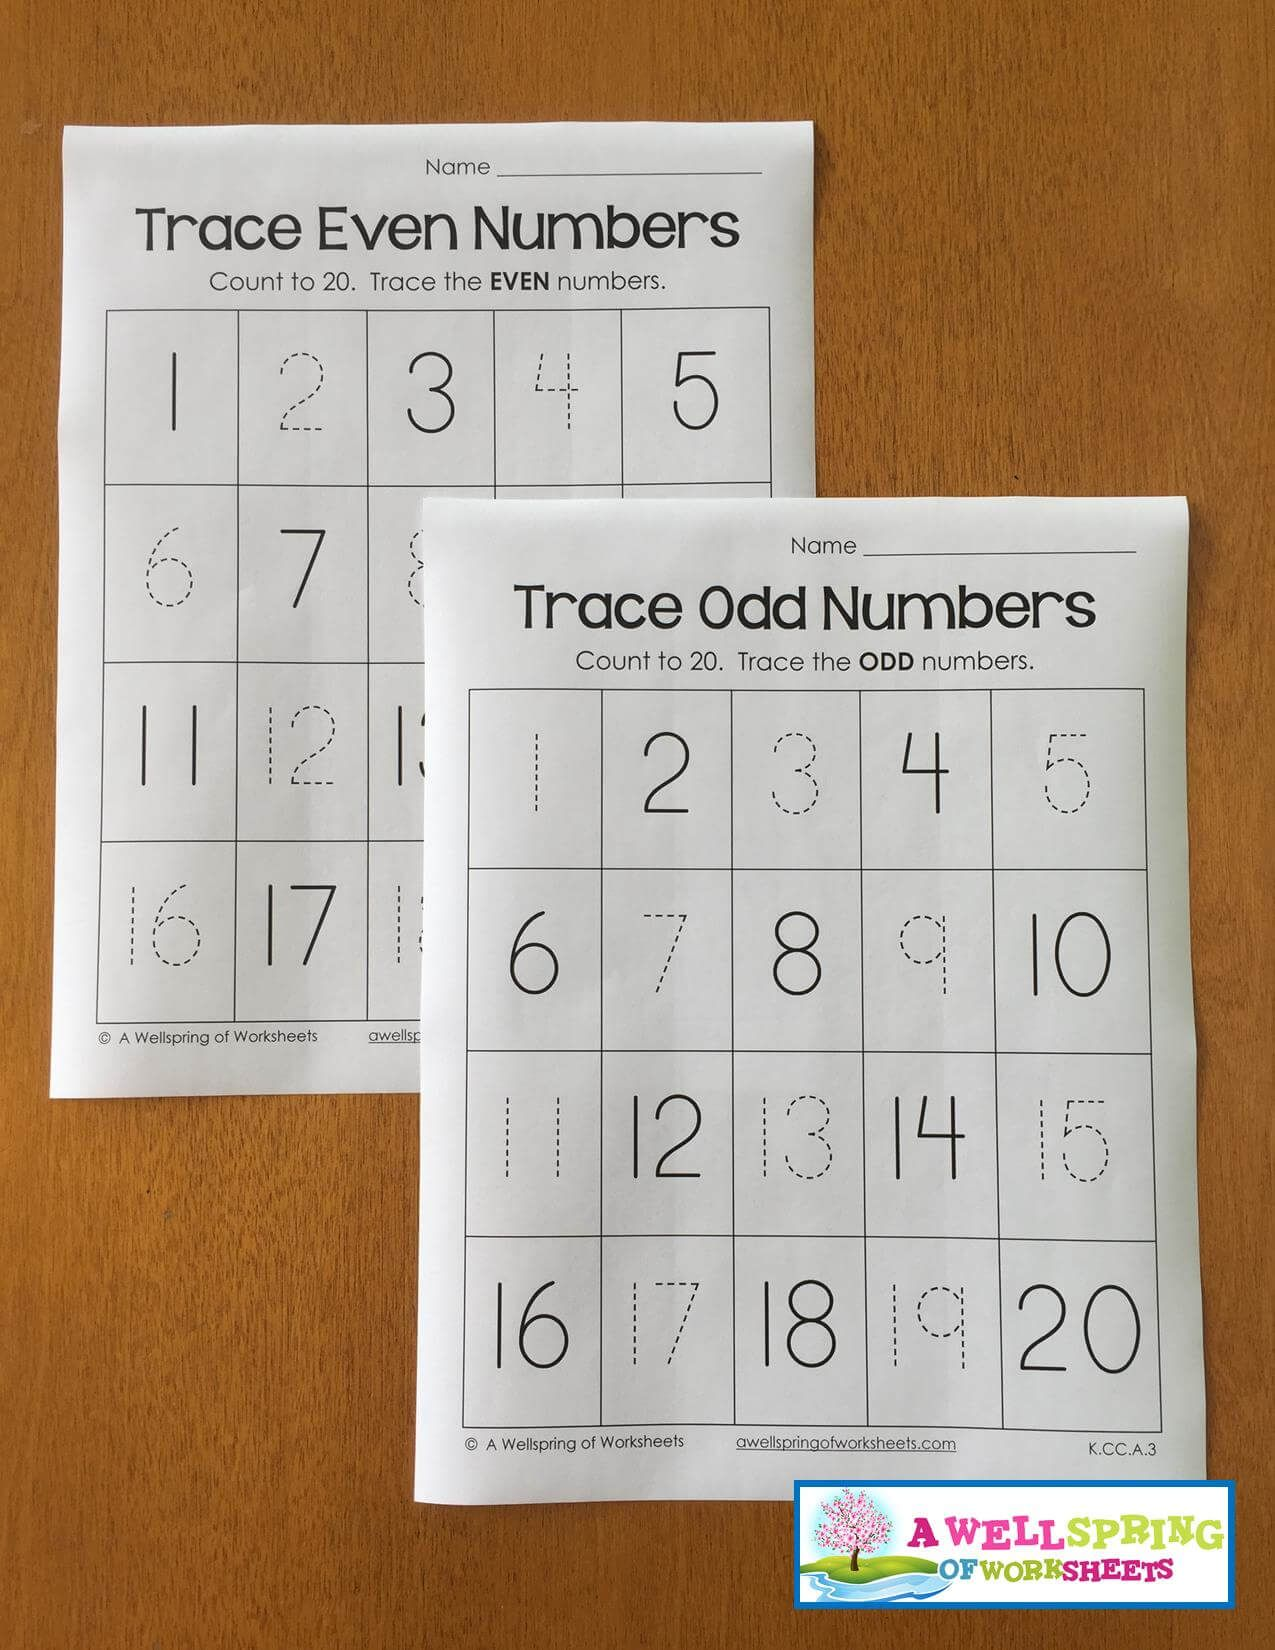 Tracing Numbers 1 20 Worksheets Blog Post A Wellspring Of Worksheets Numbers Kindergarten Counting To 20 Odd Numbers